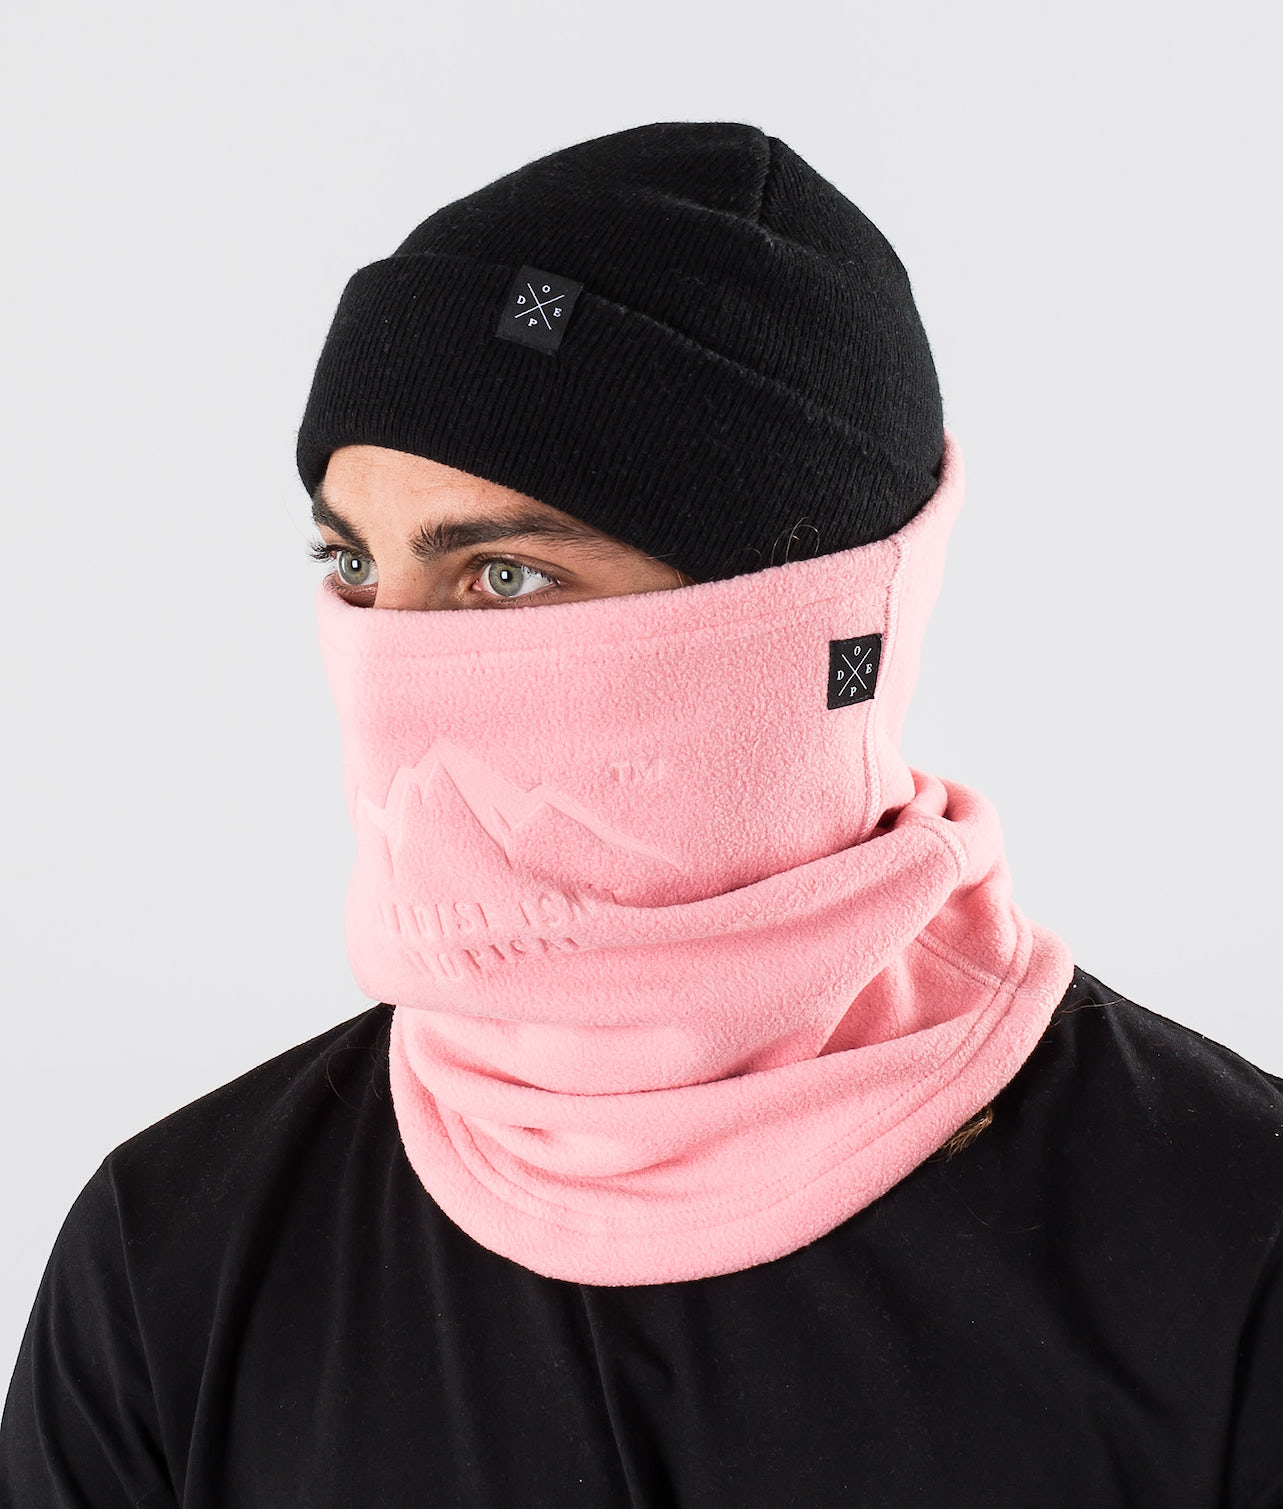 Buy Cozy Tube Facemask from Dope at Ridestore.com - Always free shipping, free returns and 30 days money back guarantee